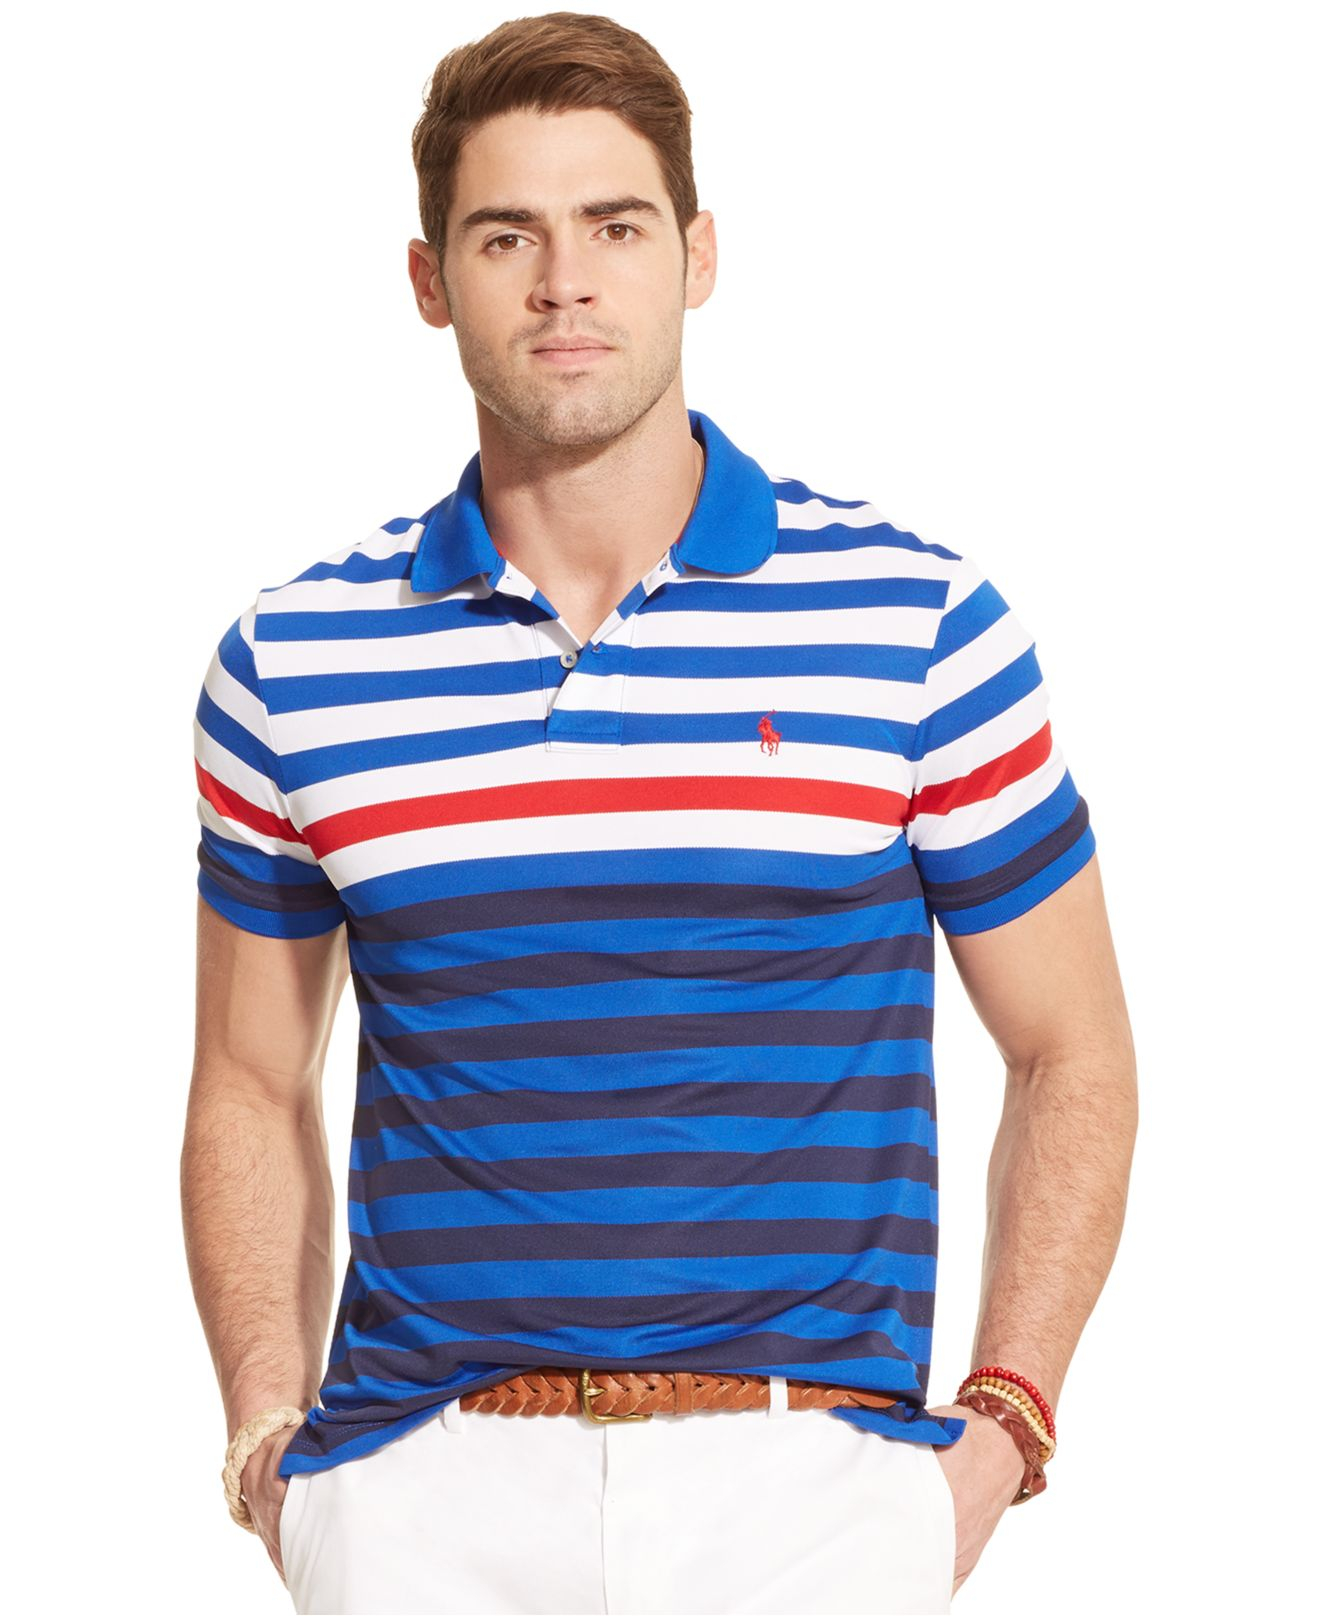 polo ralph lauren multi striped performance mesh polo shirt in blue for men lyst. Black Bedroom Furniture Sets. Home Design Ideas